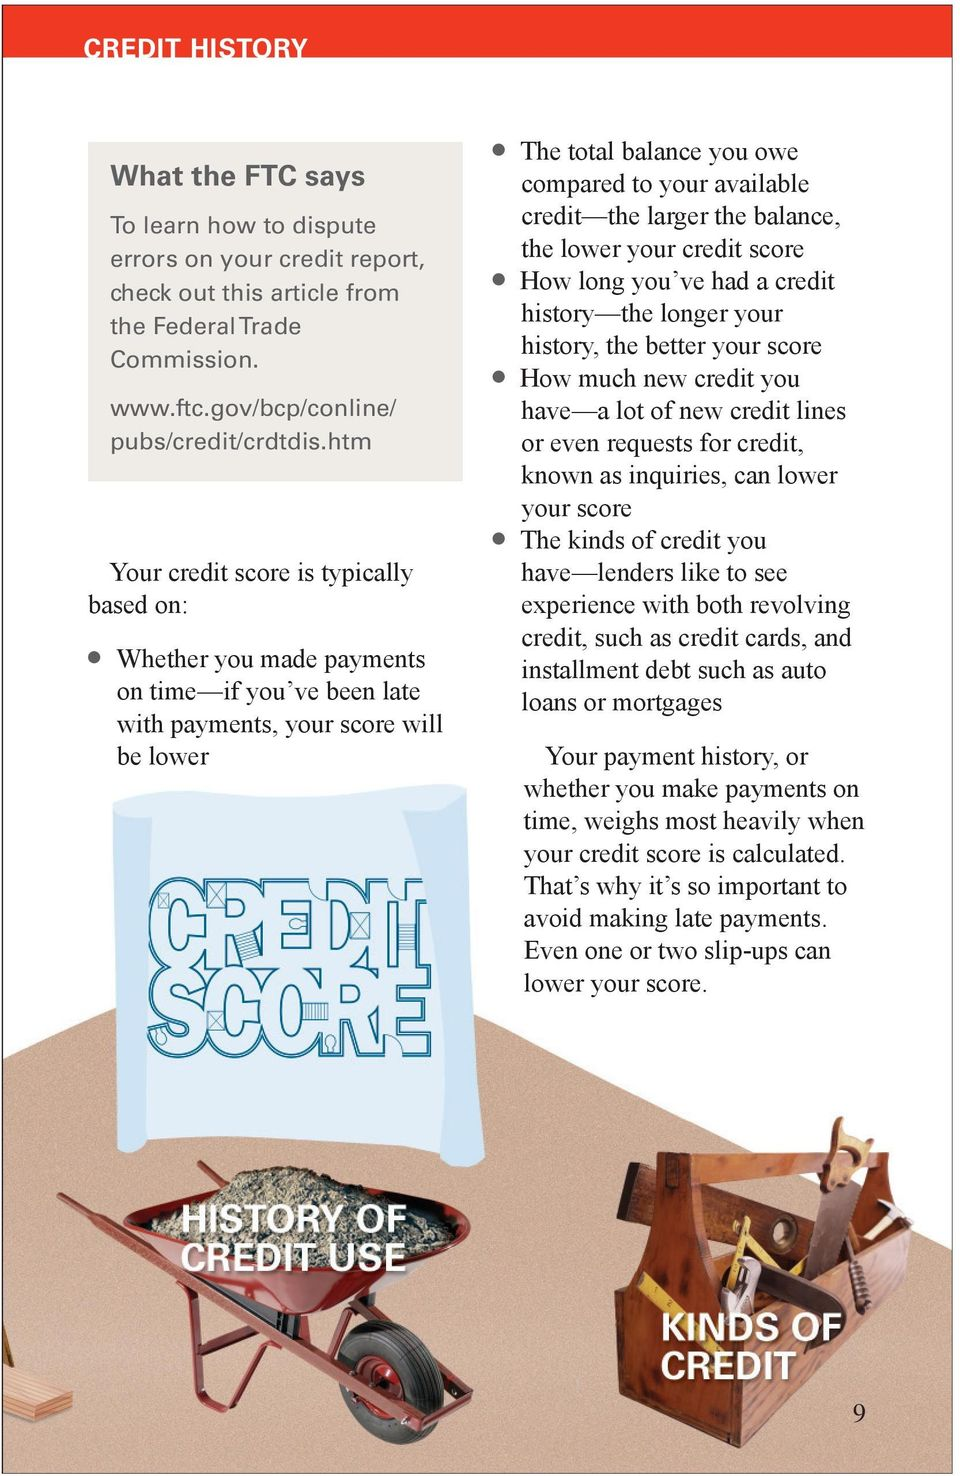 the larger the balance, the lower your credit score How long you ve had a credit history the longer your history, the better your score How much new credit you have a lot of new credit lines or even